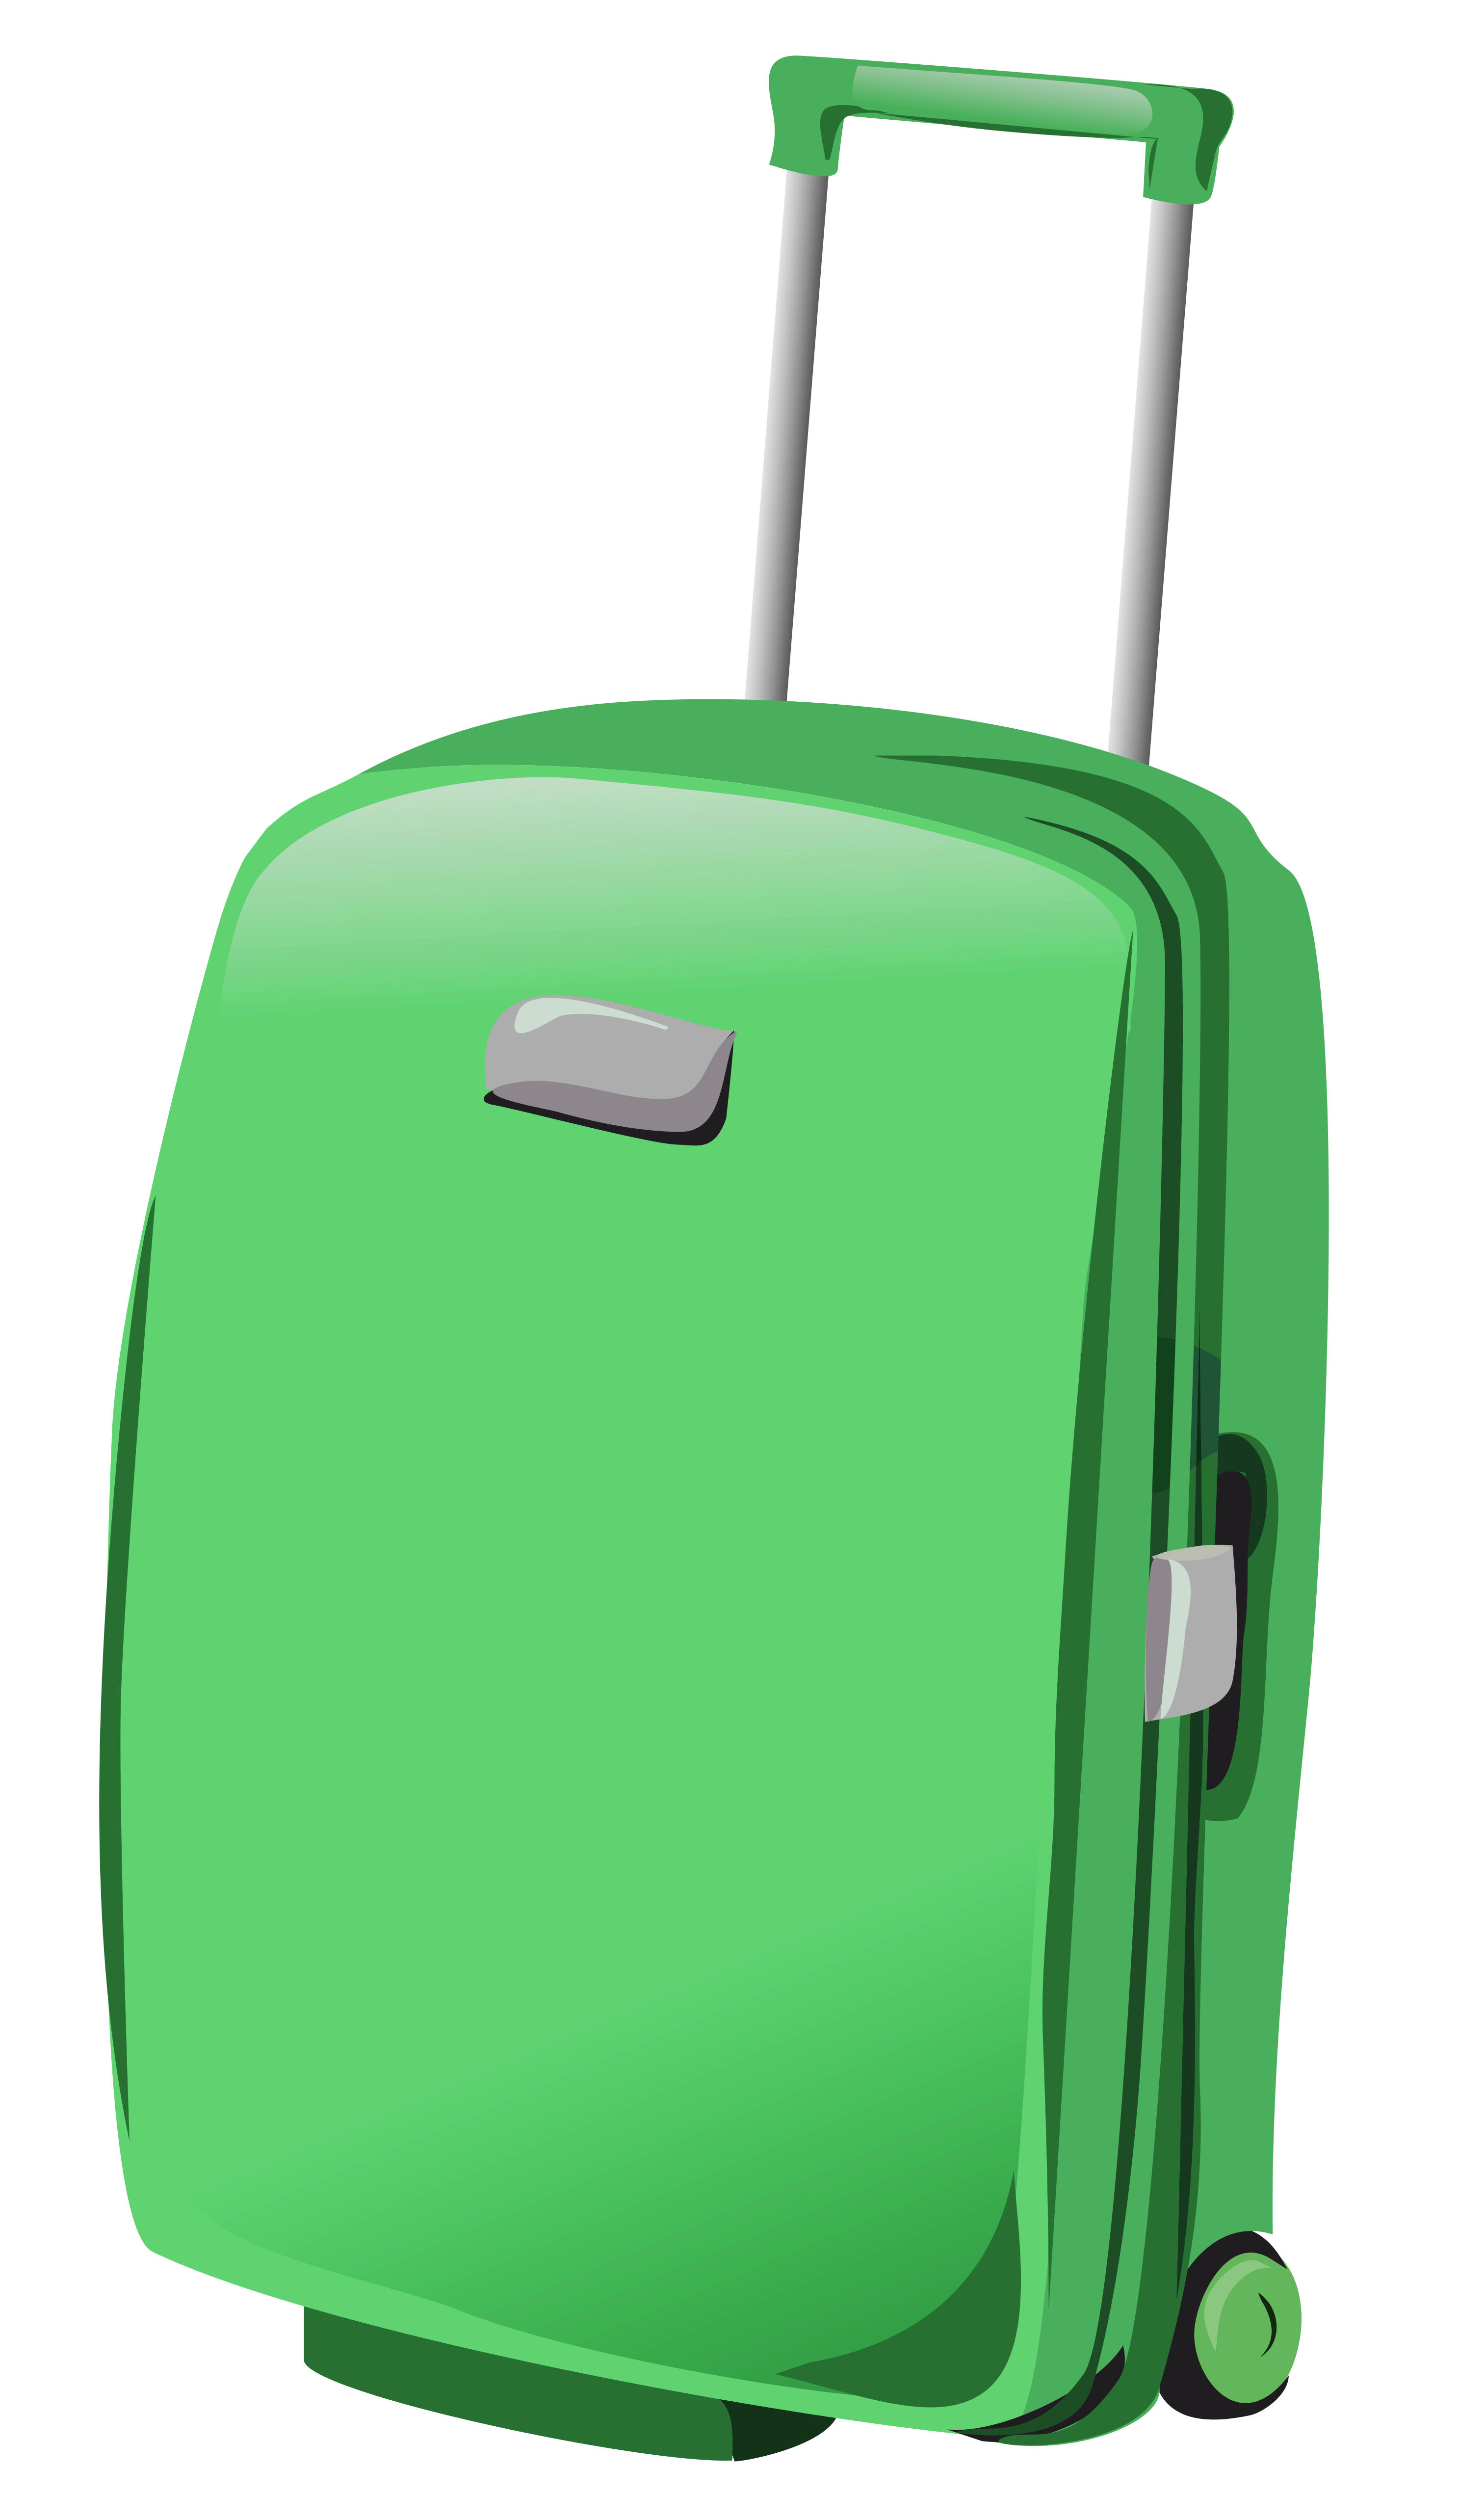 Suitcase clipart. Green png gallery yopriceville